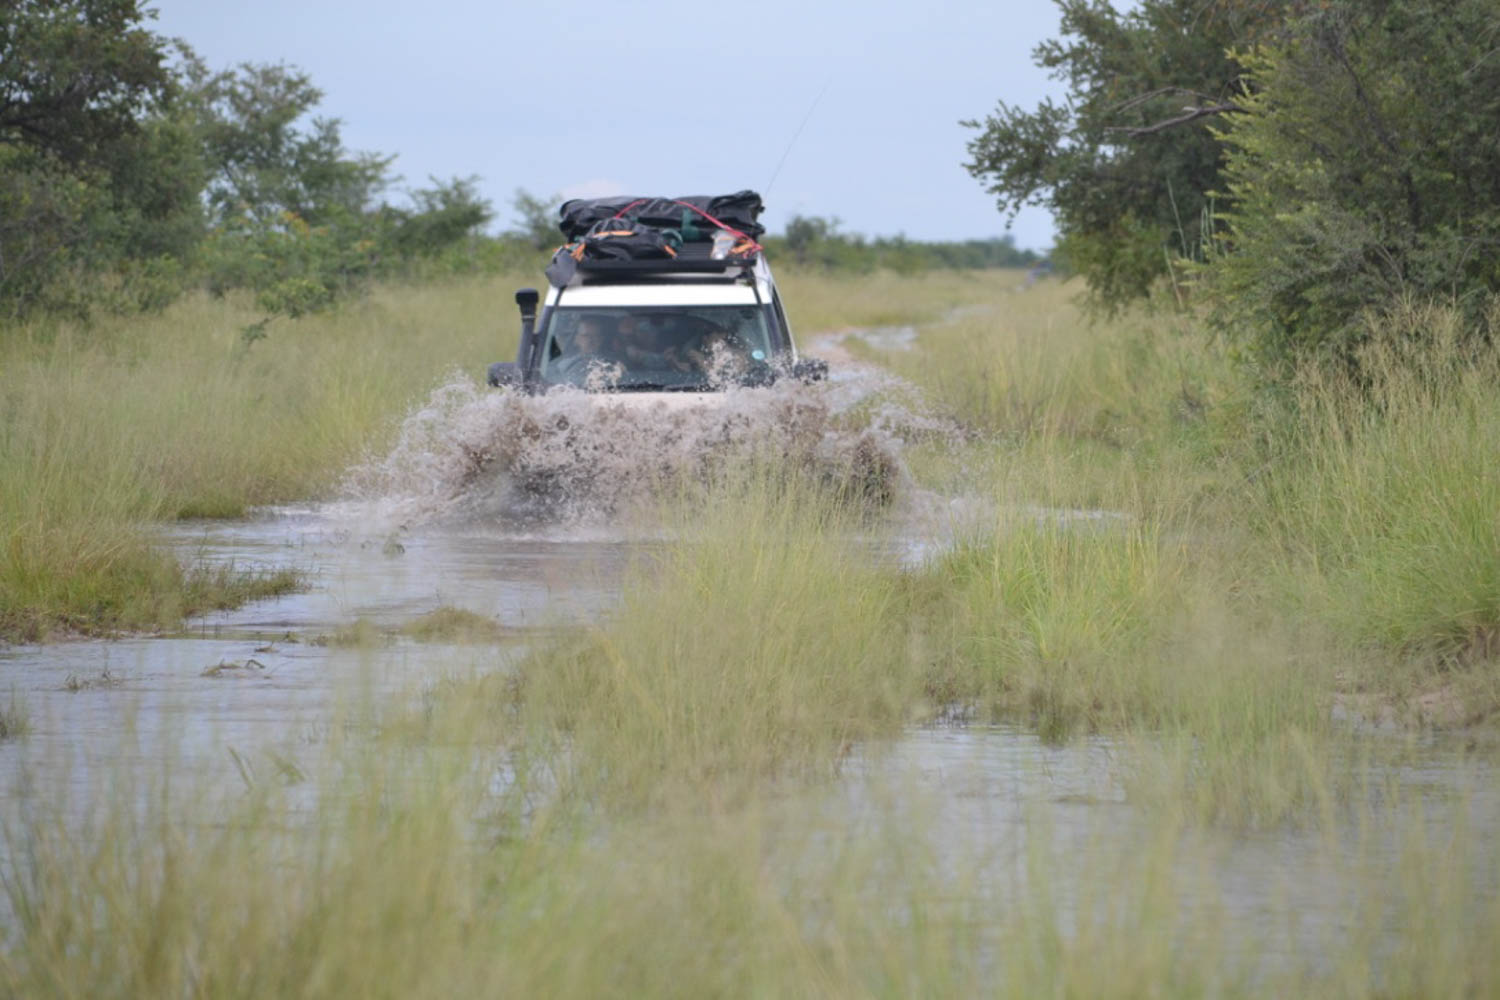 4x4 Overland Adventure Driving with South Africa Overland 4x4 Tours